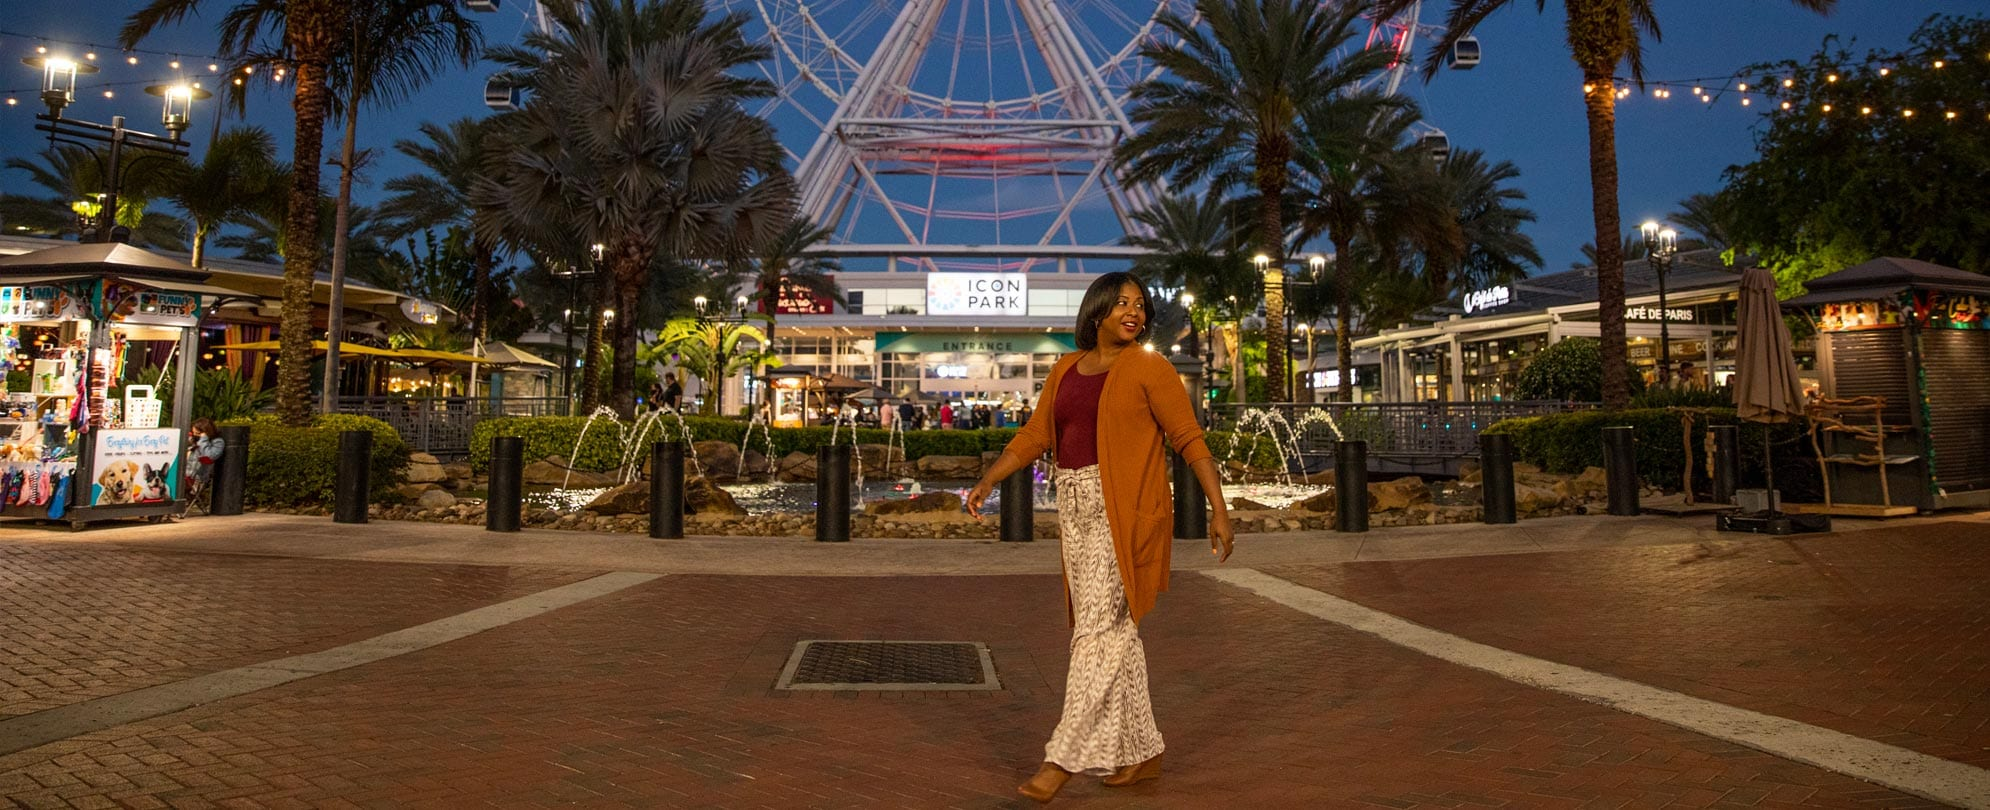 A woman walking through the courtyard of Icon Park in Orlando, Florida at dusk.